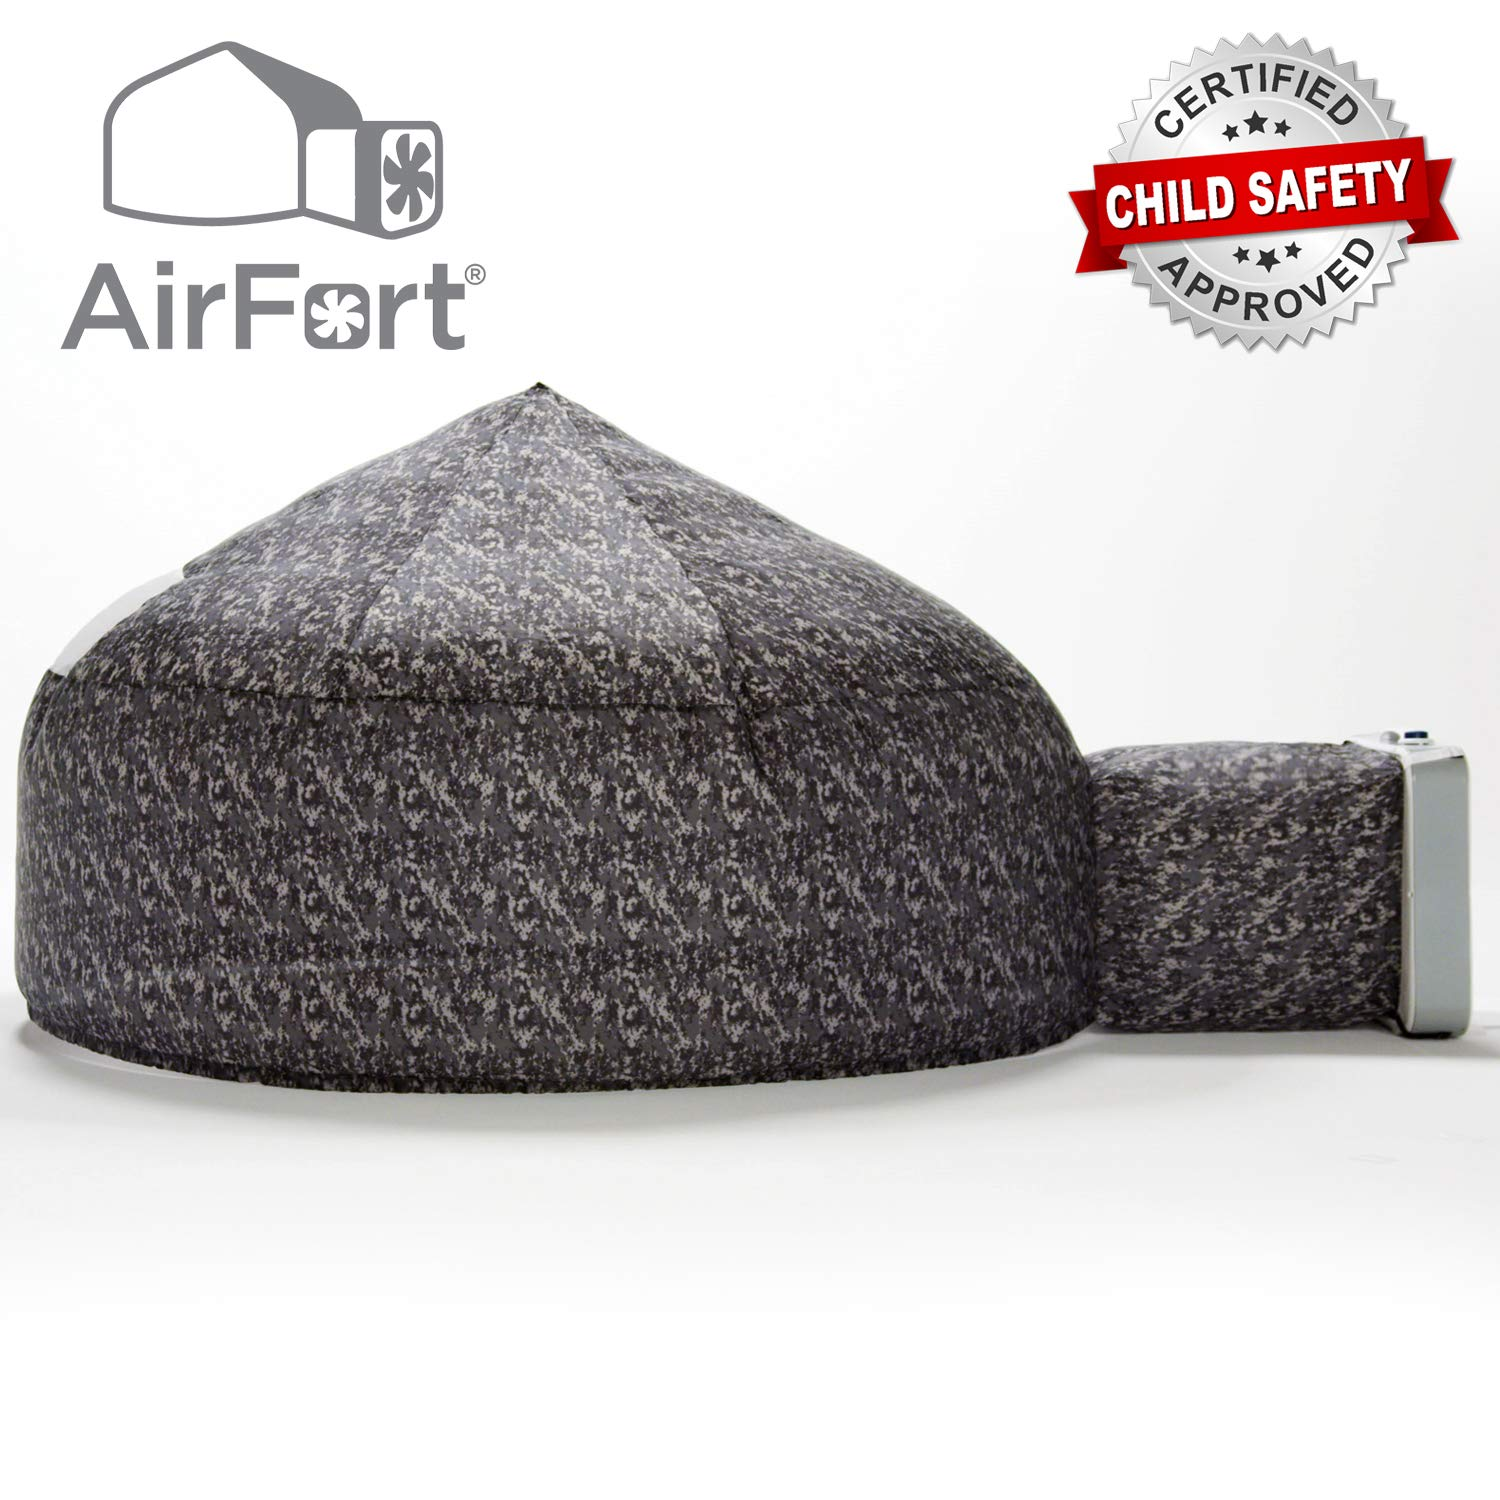 The Original AirFort Build A Fort in 30 Seconds, Inflatable for Kids, Digital Camo by Air Fort